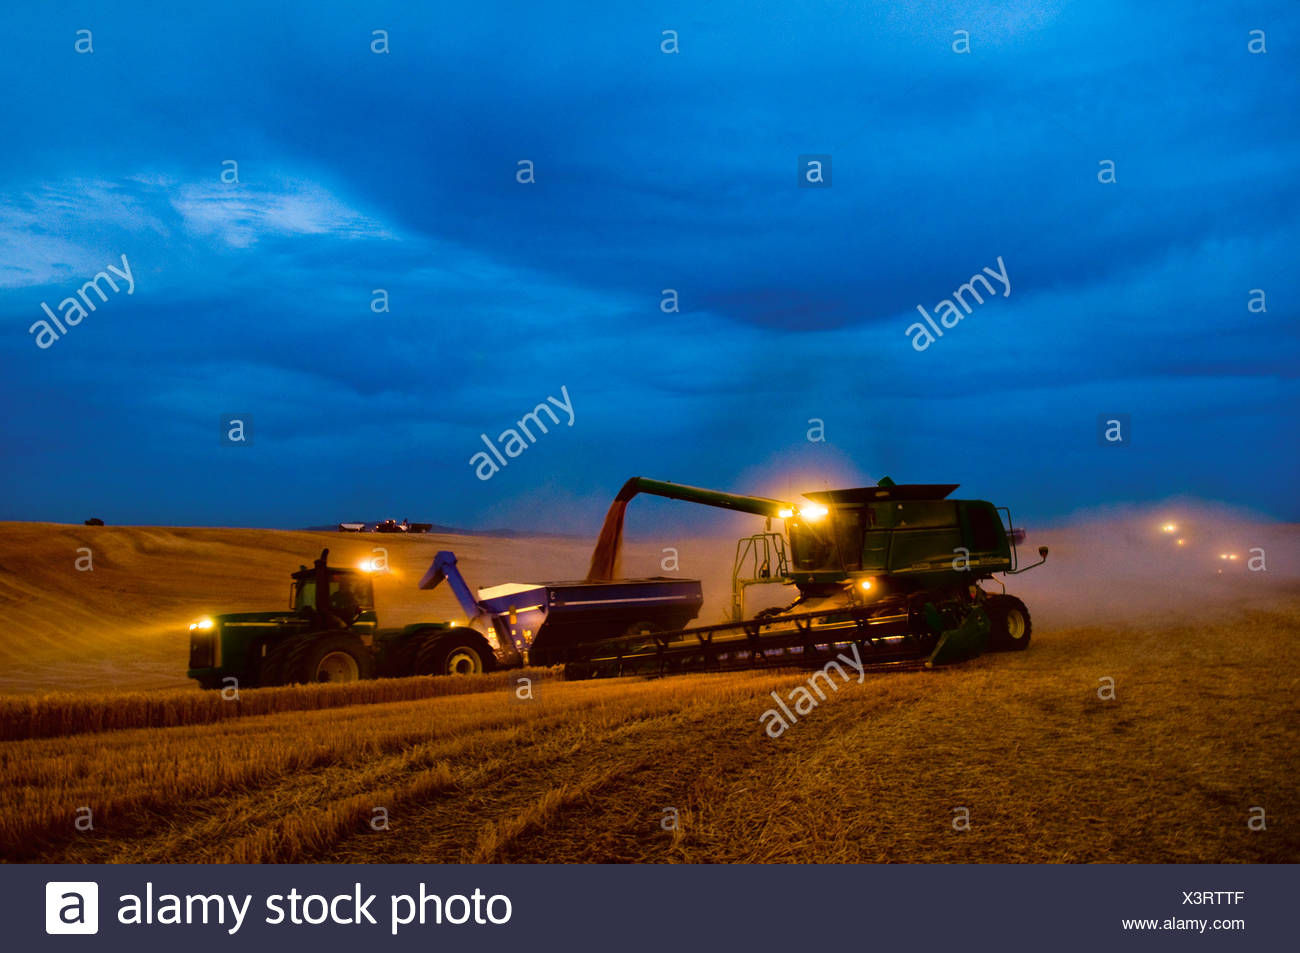 """A John Deere combine harvests wheat while unloading to a grain cart """"on-the-go"""" on an early overcast evening / Washington, USA. - Stock Image"""